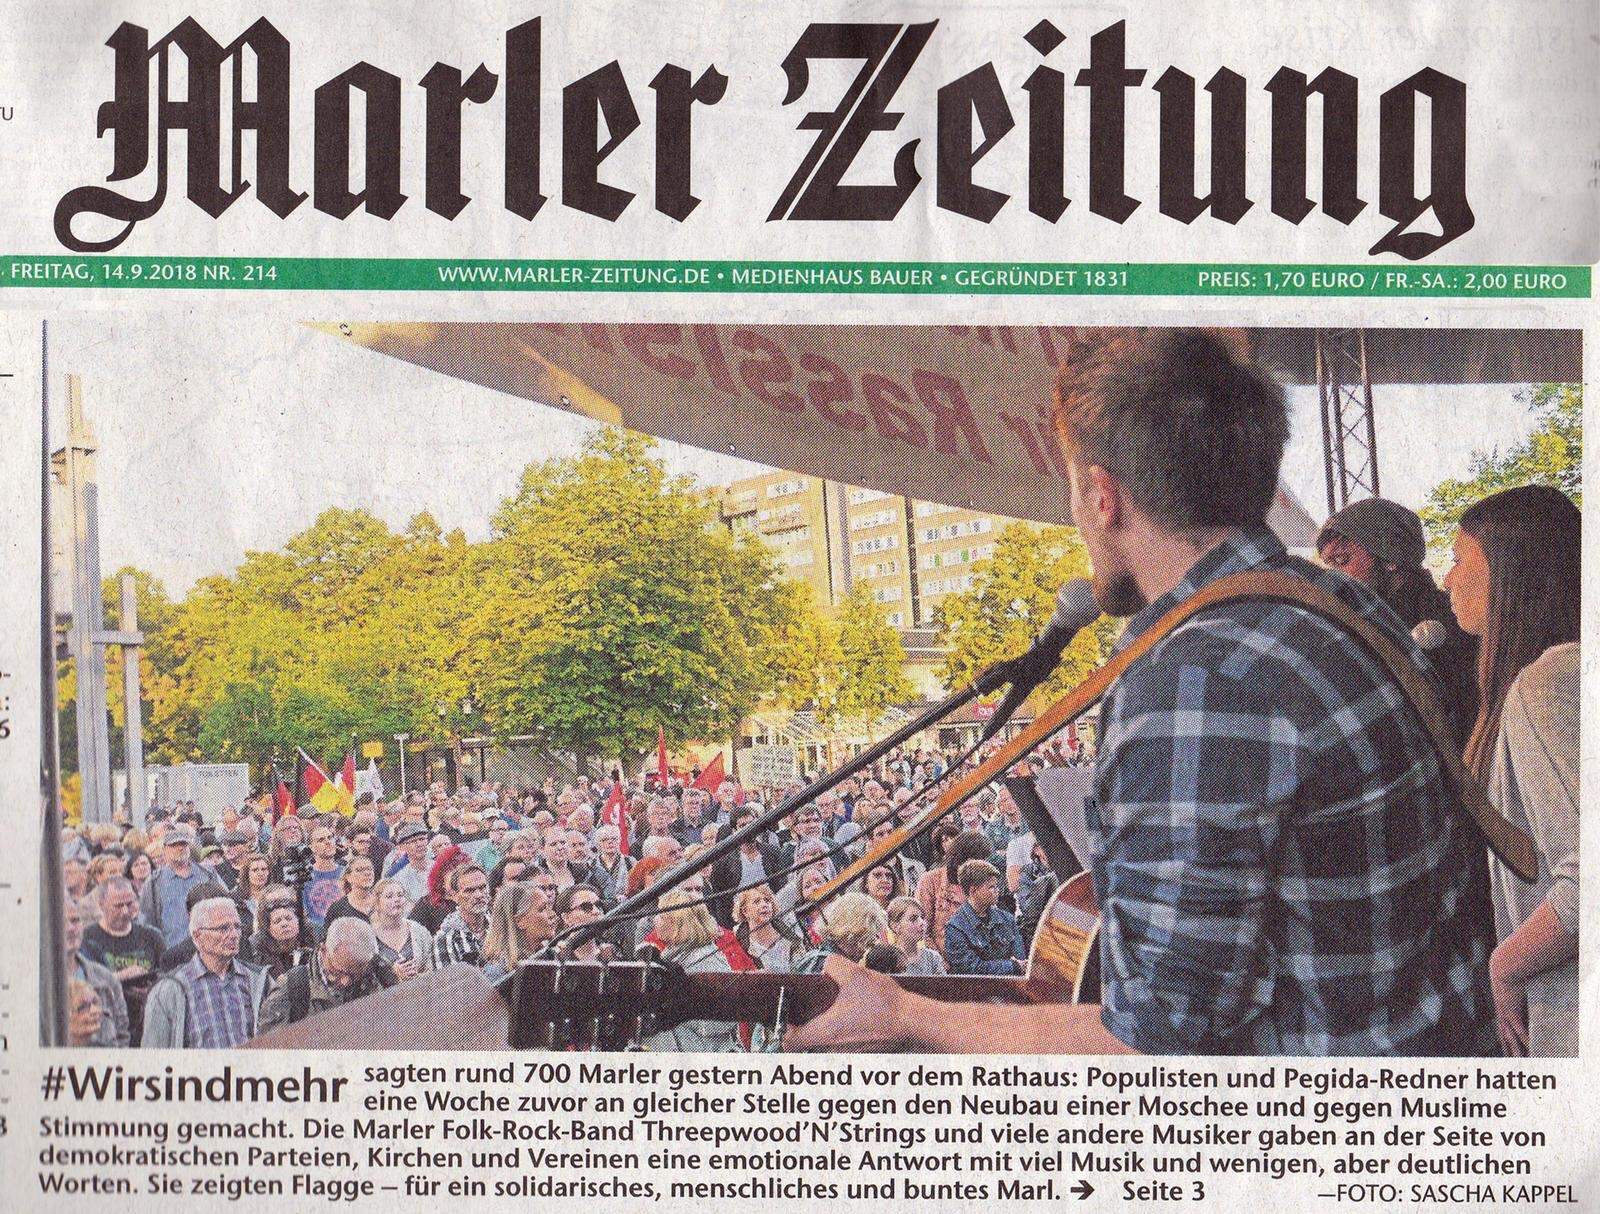 Threepwood N Strings #wirsindmehr Marl